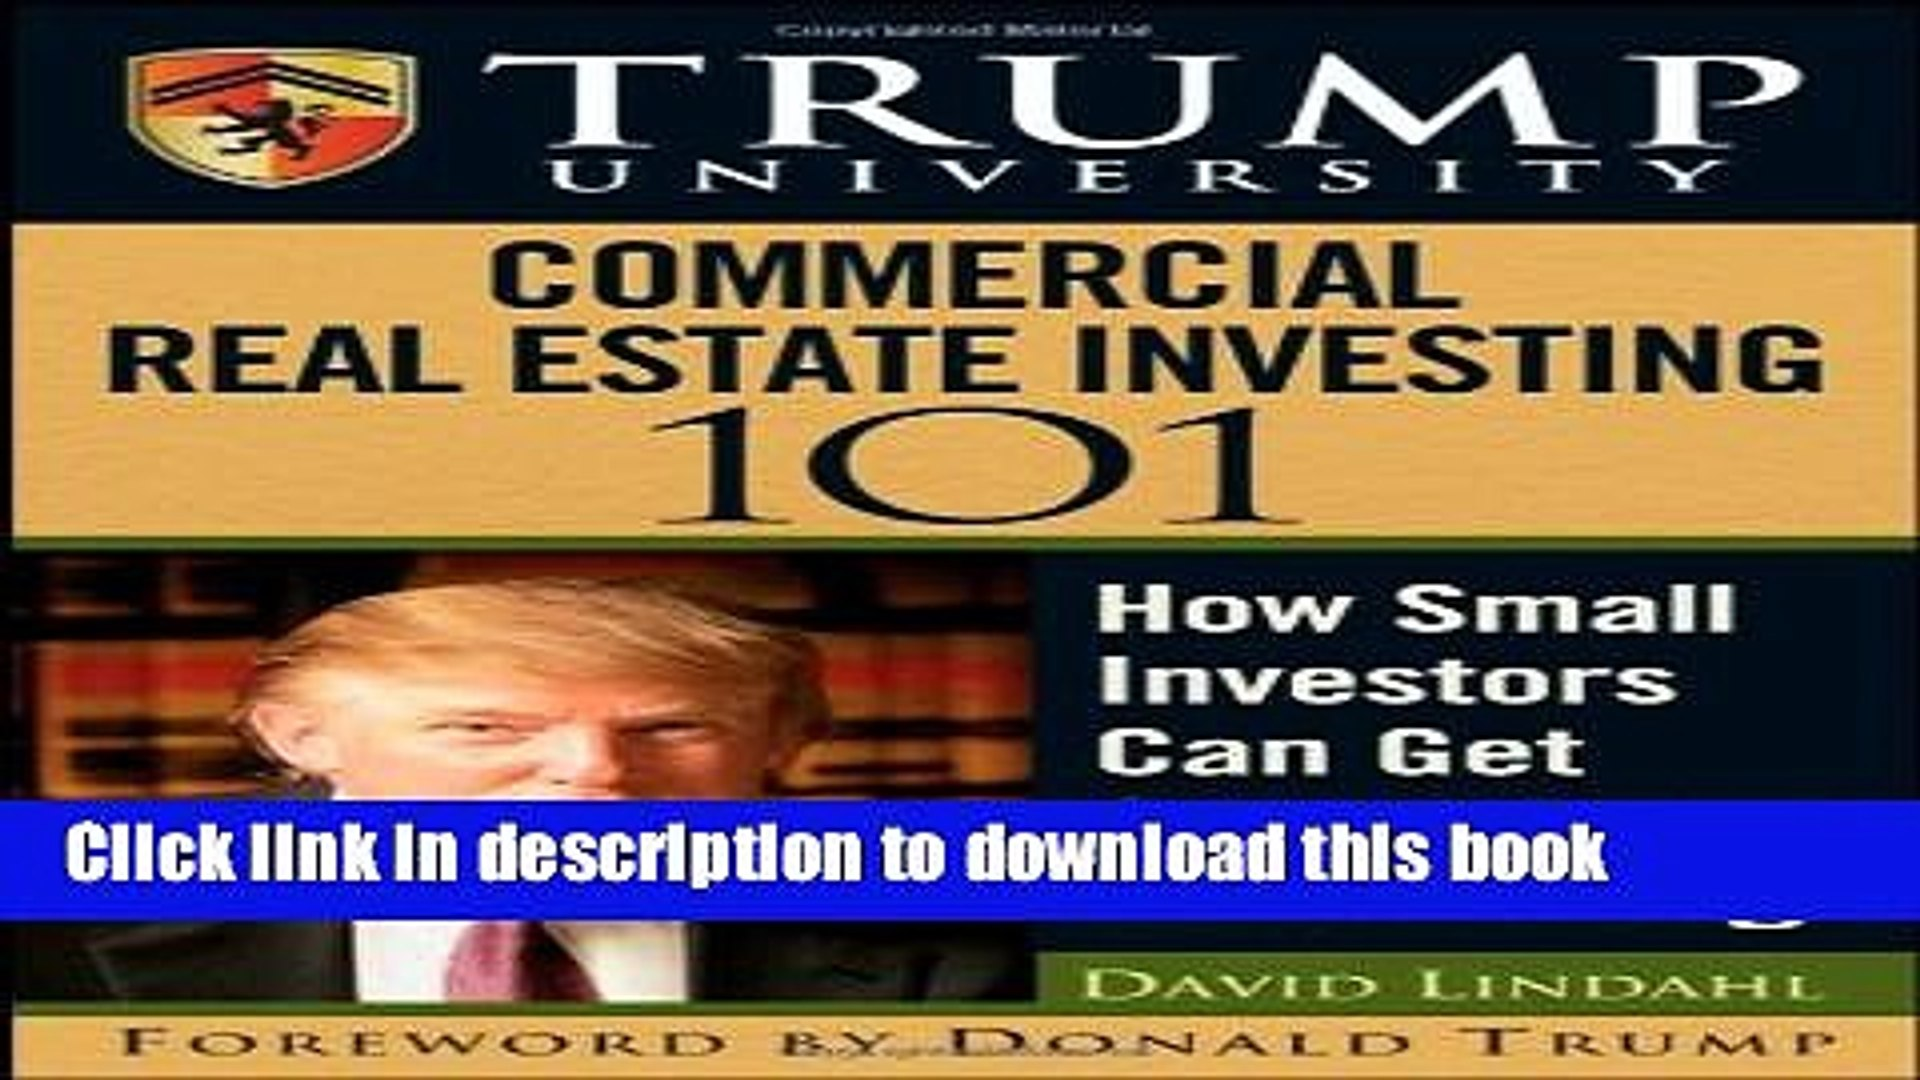 Ebook Trump University Commercial Real Estate 101: How Small Investors Can Get Started and Make It